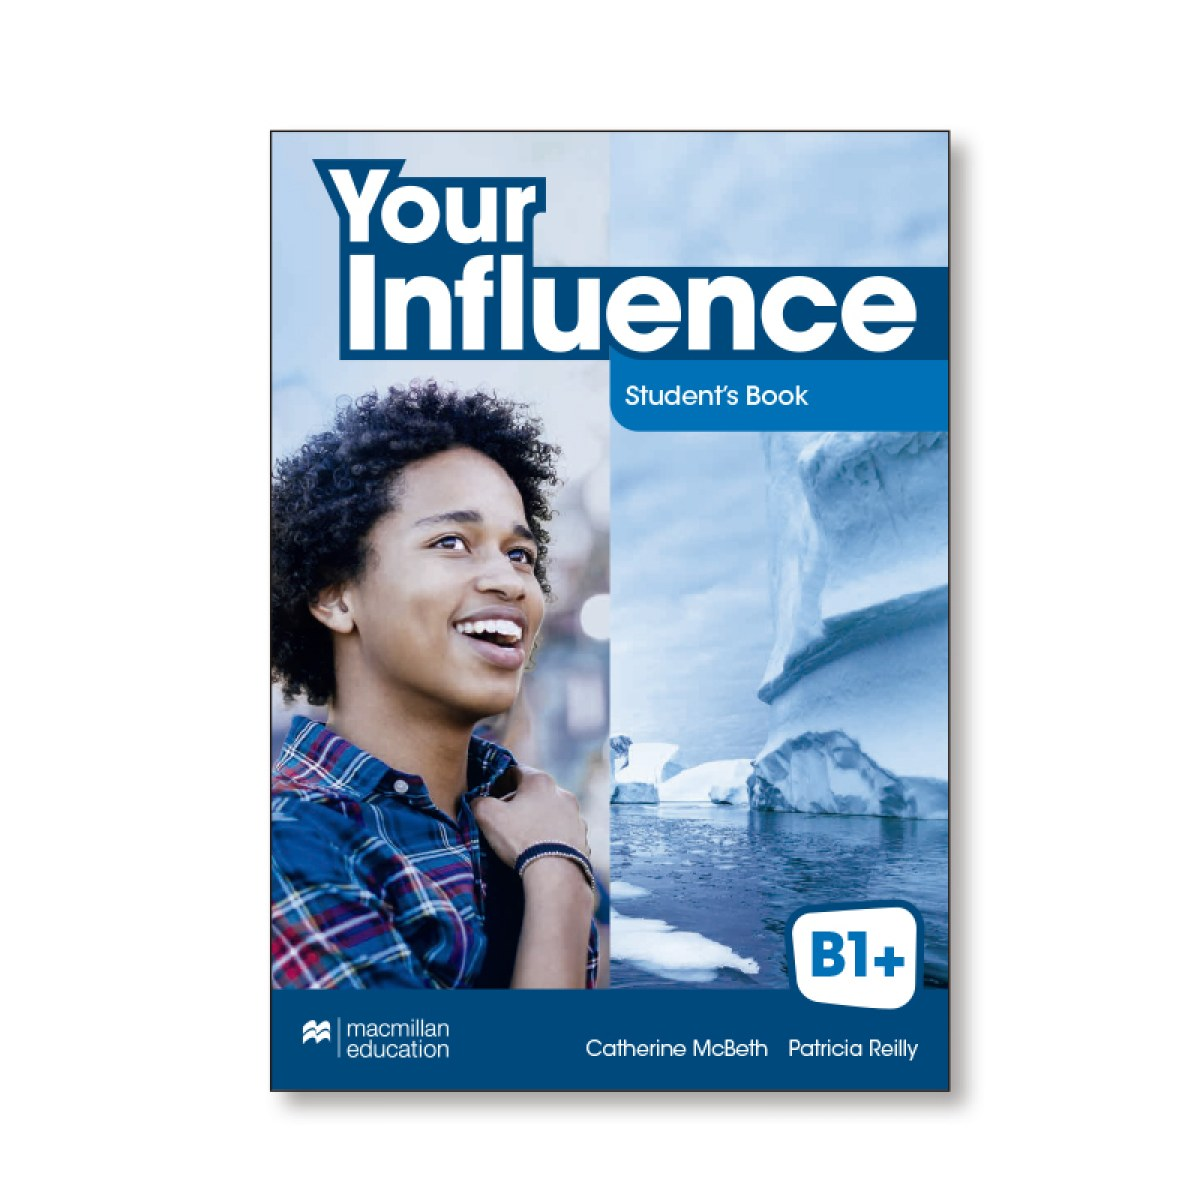 Your Influence B1+ Student's Book Pack